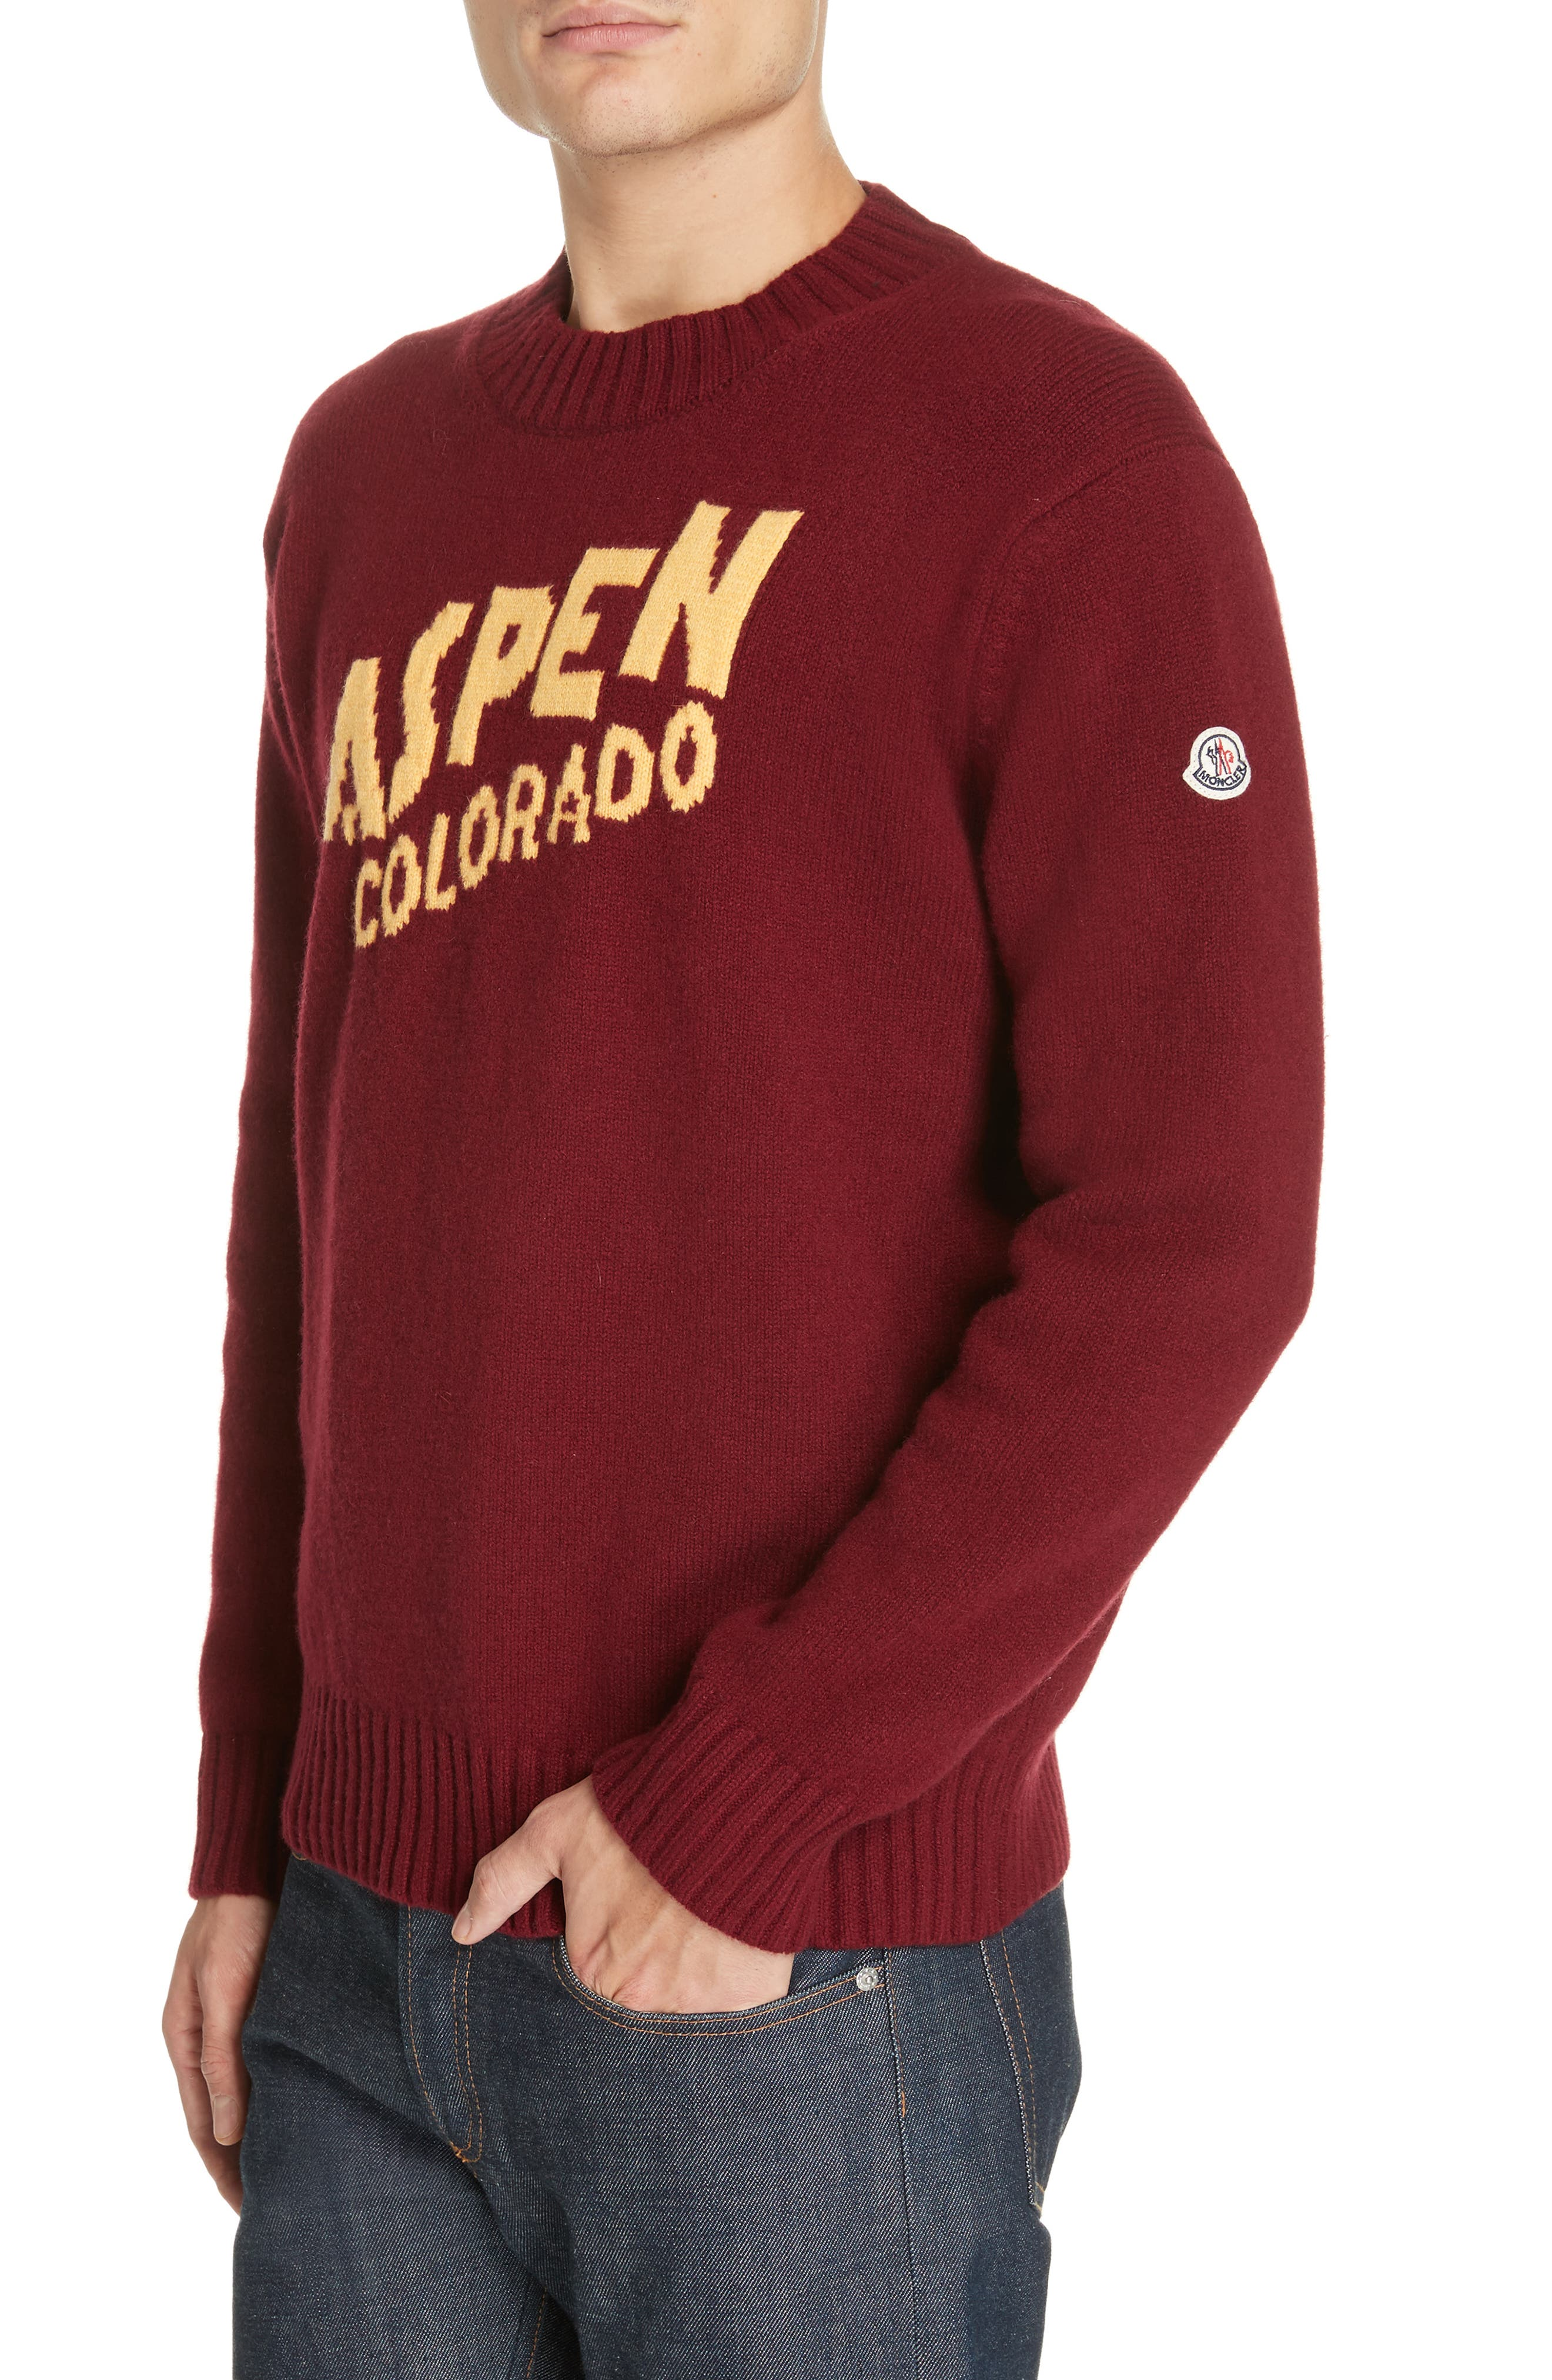 MONCLER, Maglione Cashmere Sweater, Main thumbnail 1, color, 601